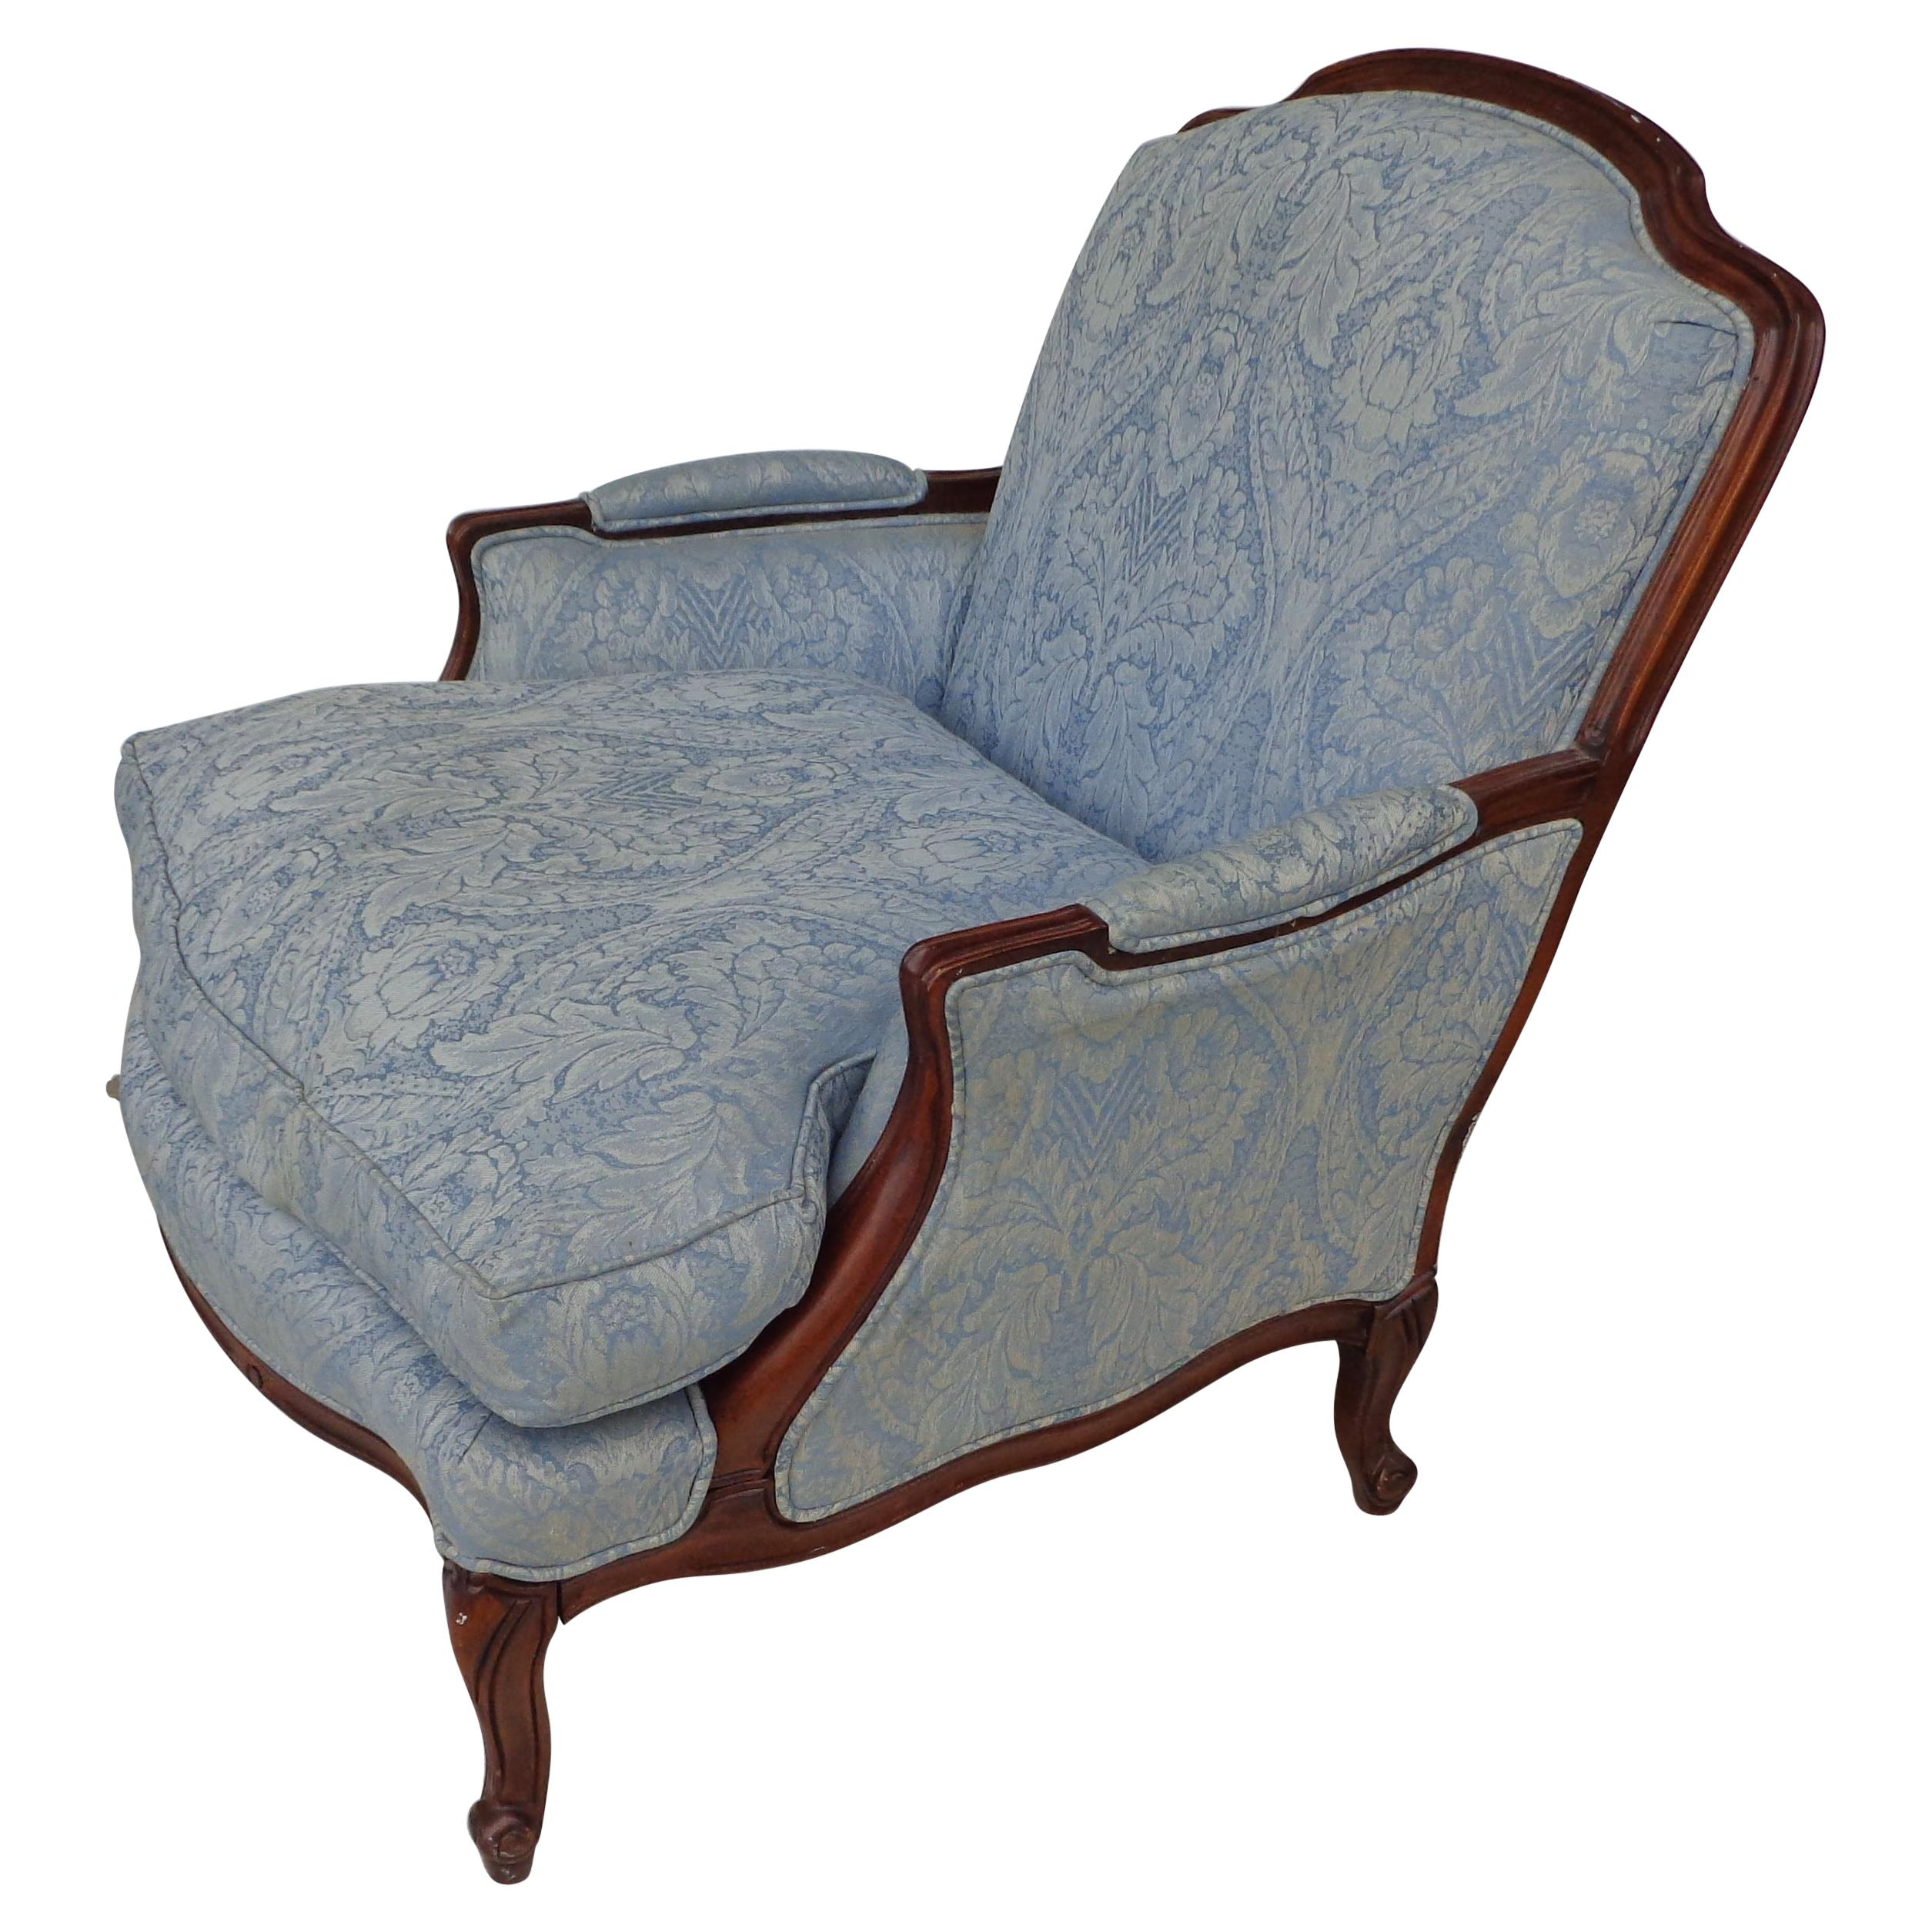 French Country Louis XV Style Bergere Lounge Chair